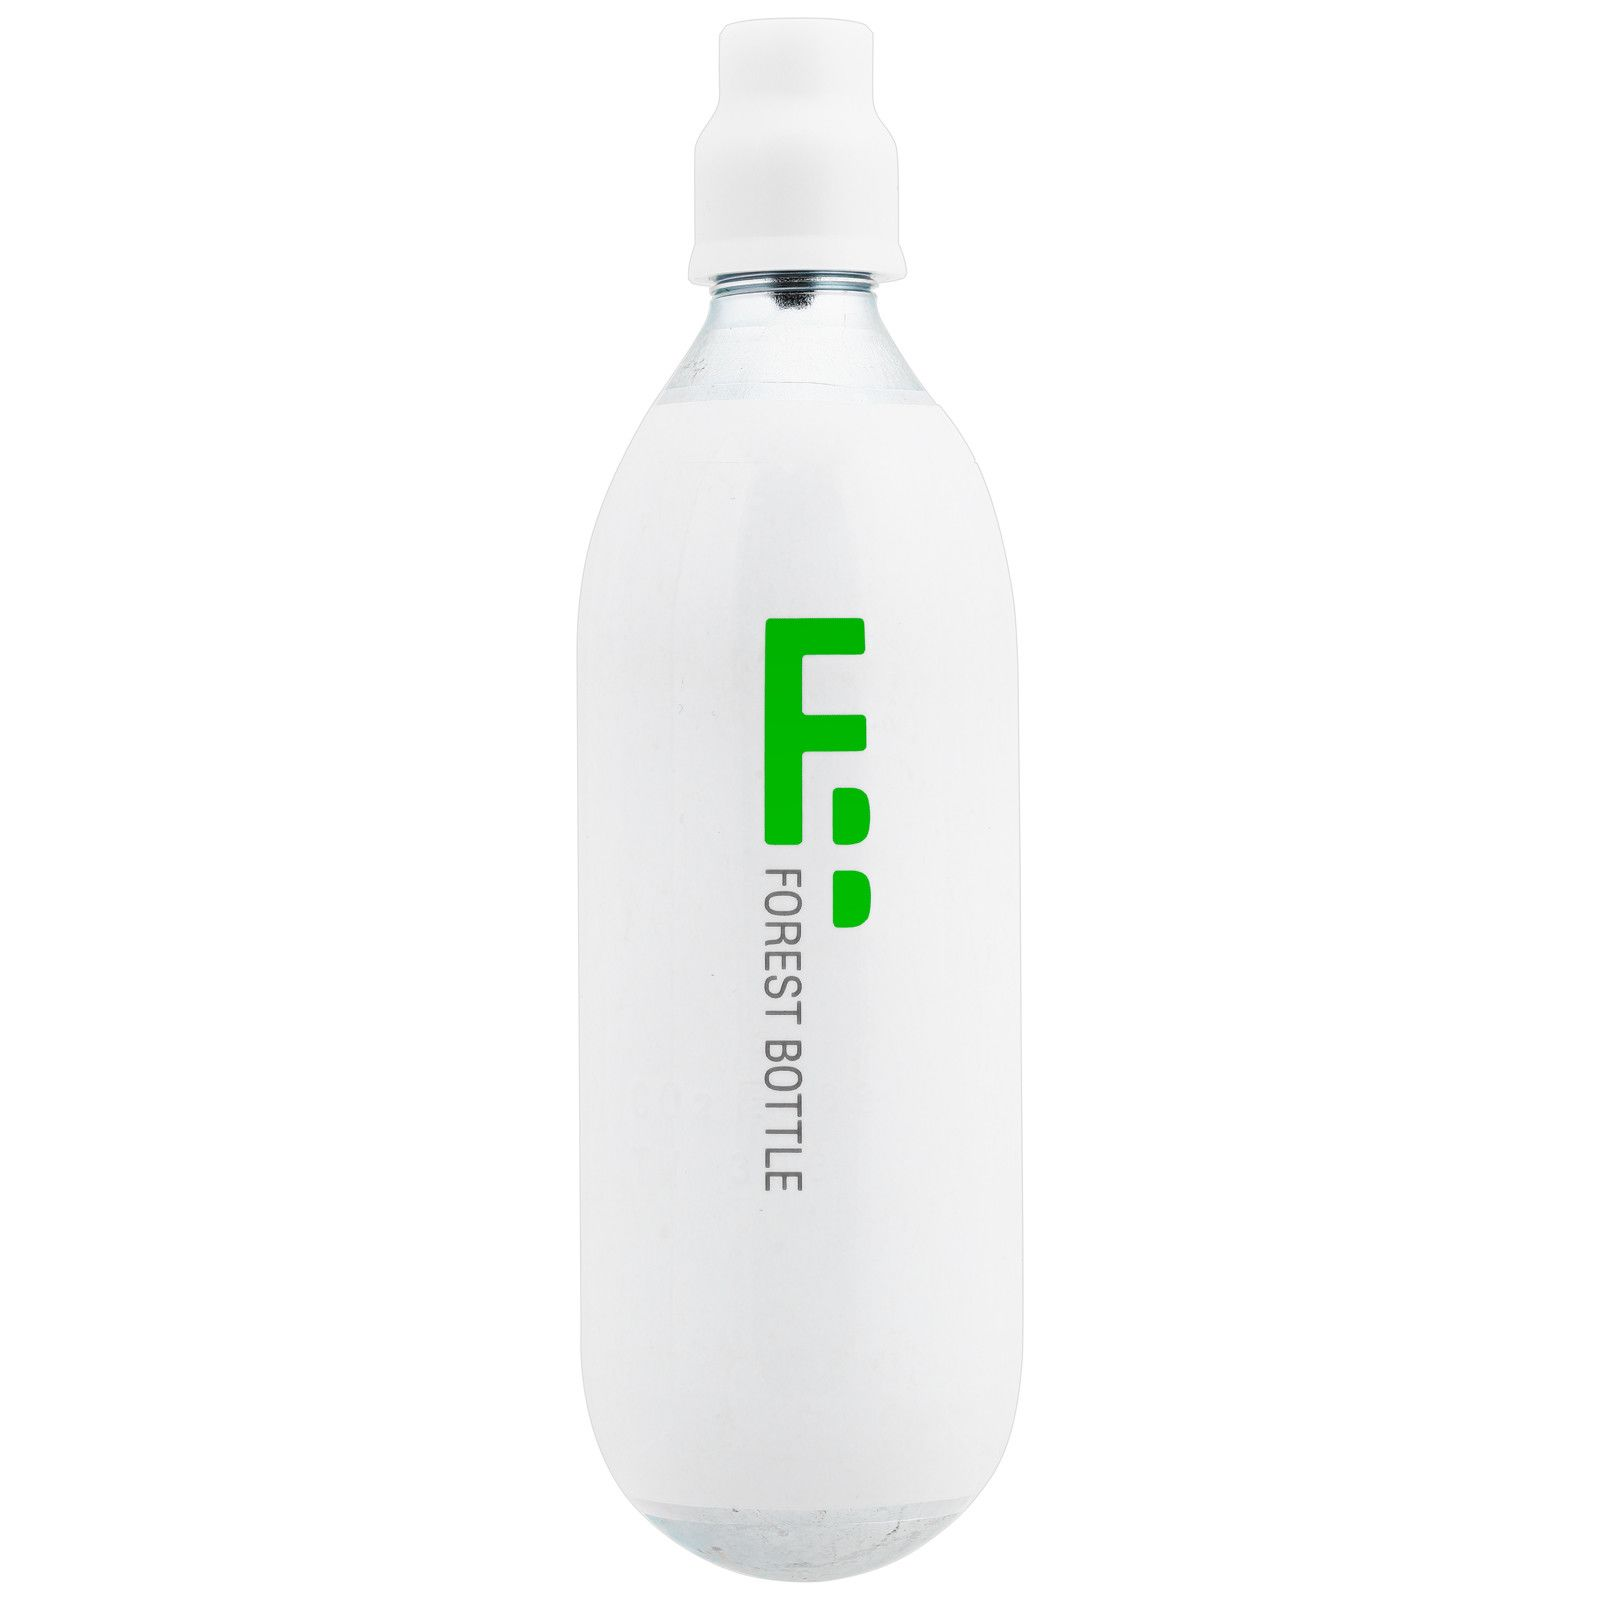 ADA Forest Bottle Replacement